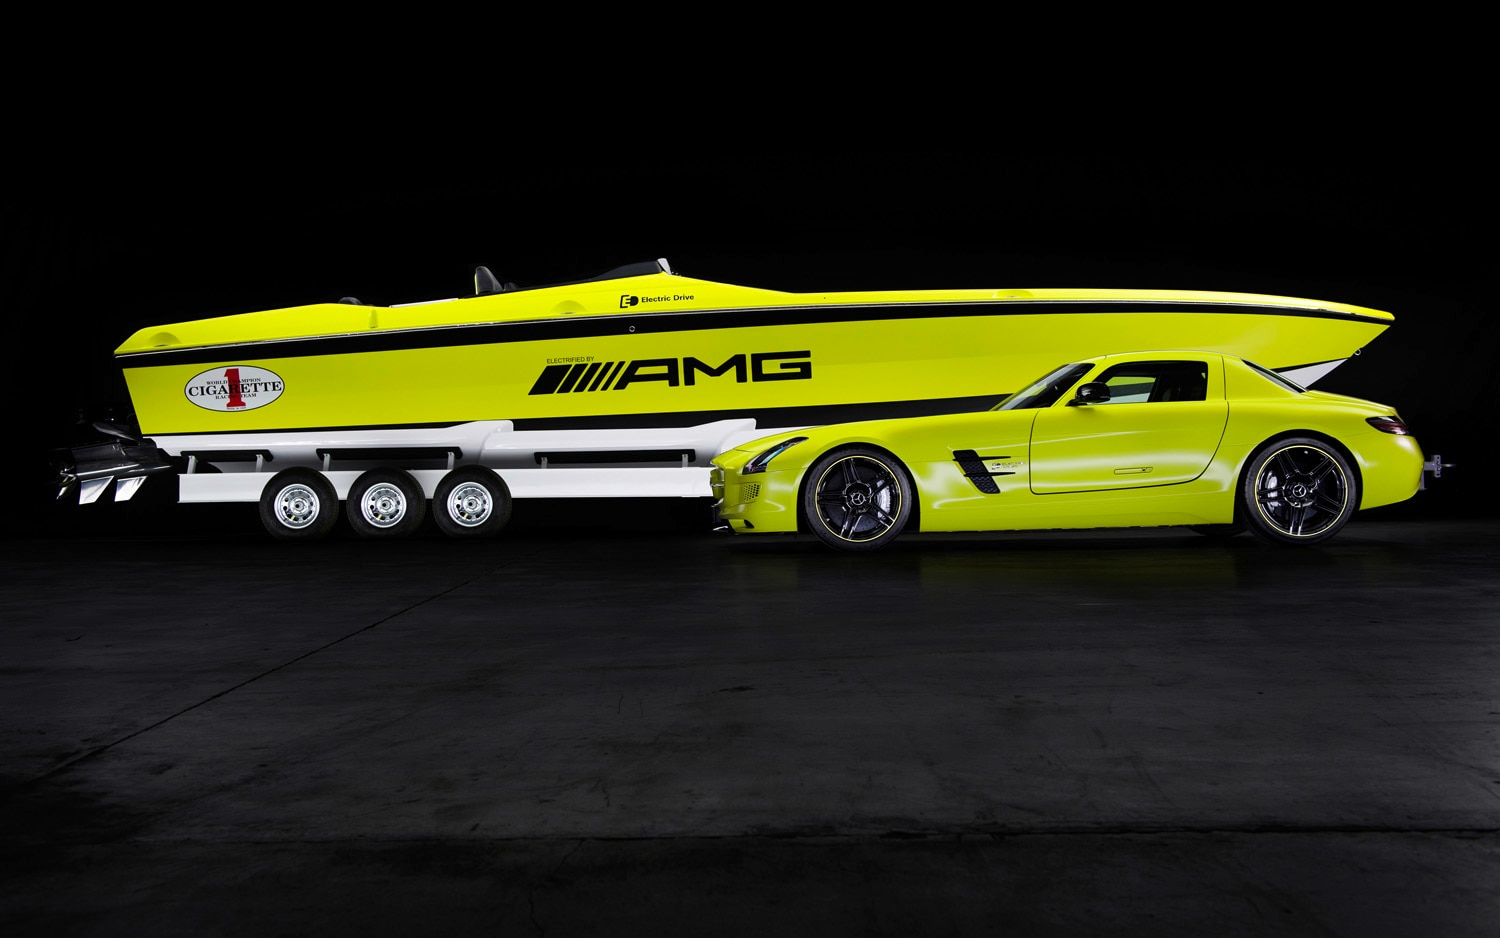 Mercedes Benz AMG Cigarette Boat And SLS E Cell 11